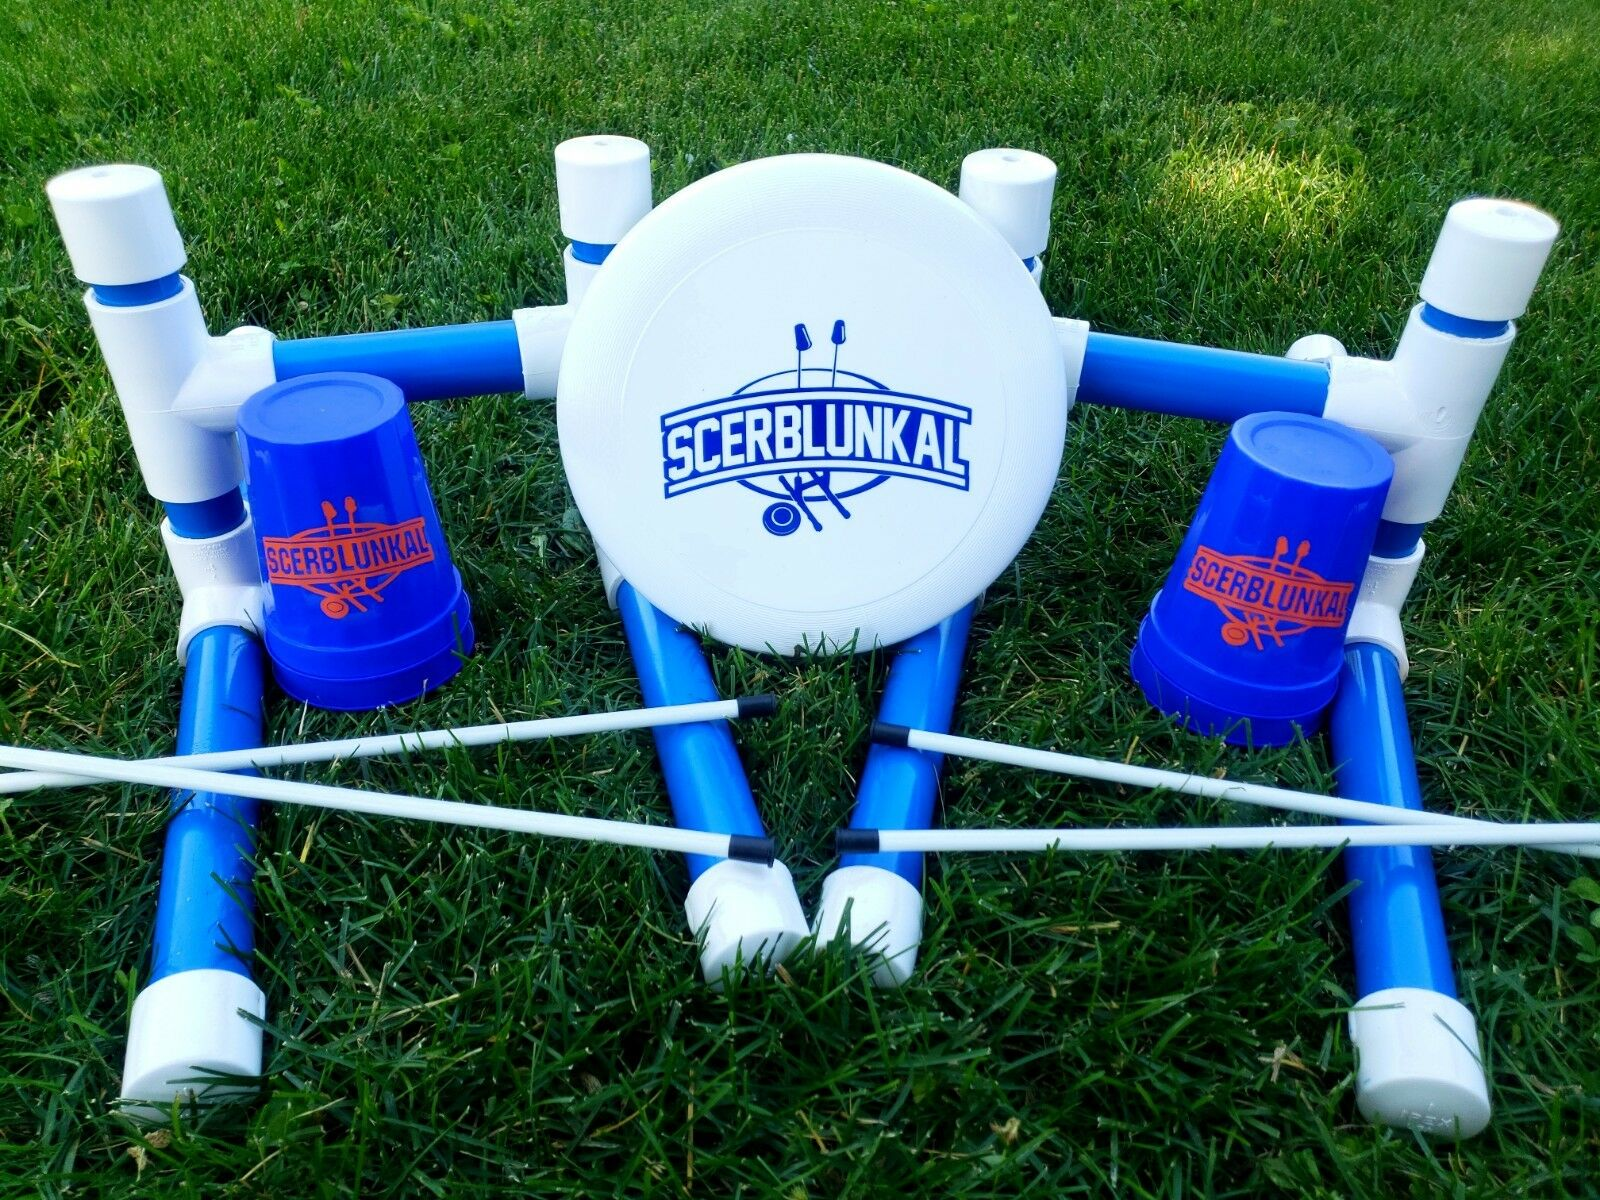 Scerbluenkal The New  Frisbee Yard Game  be in great demand